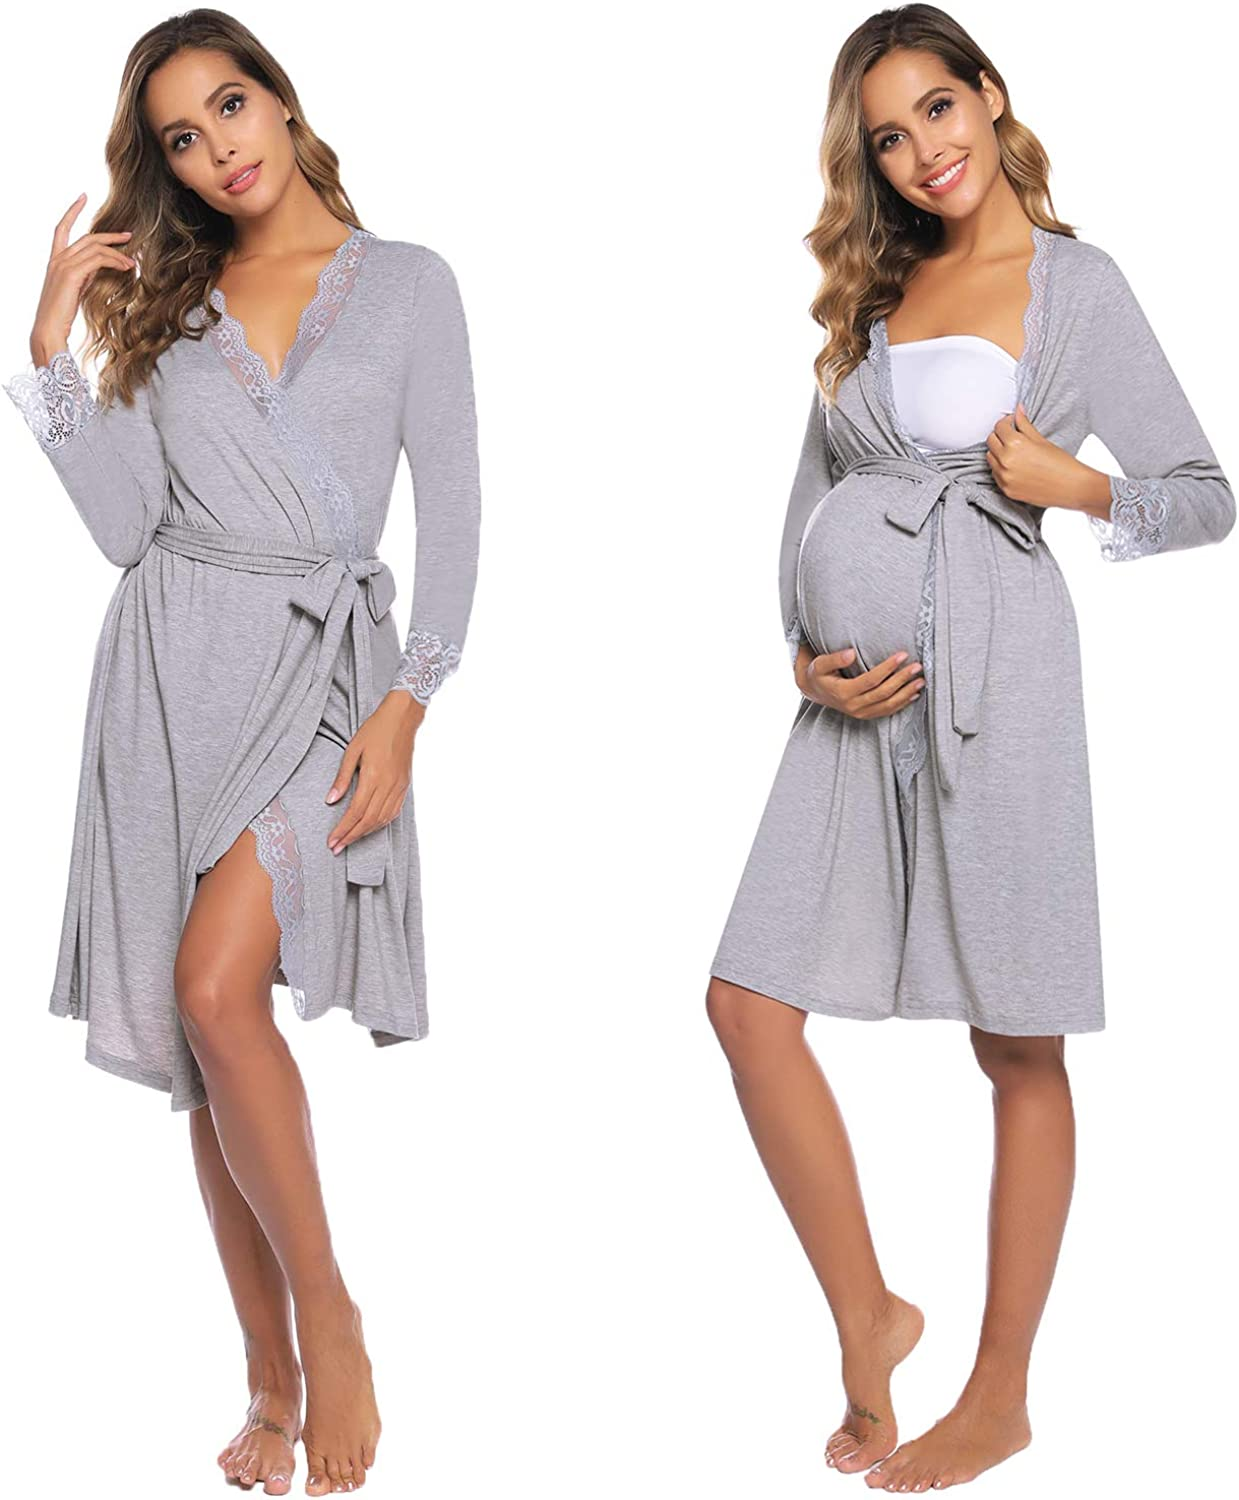 Sykooria Womens Breastfeeding Nightdress Long Sleeve Robe Soft and Lightweight Maternity Dressing Gown Nursing Bathrobe Nightgown for Home Hospital Labour